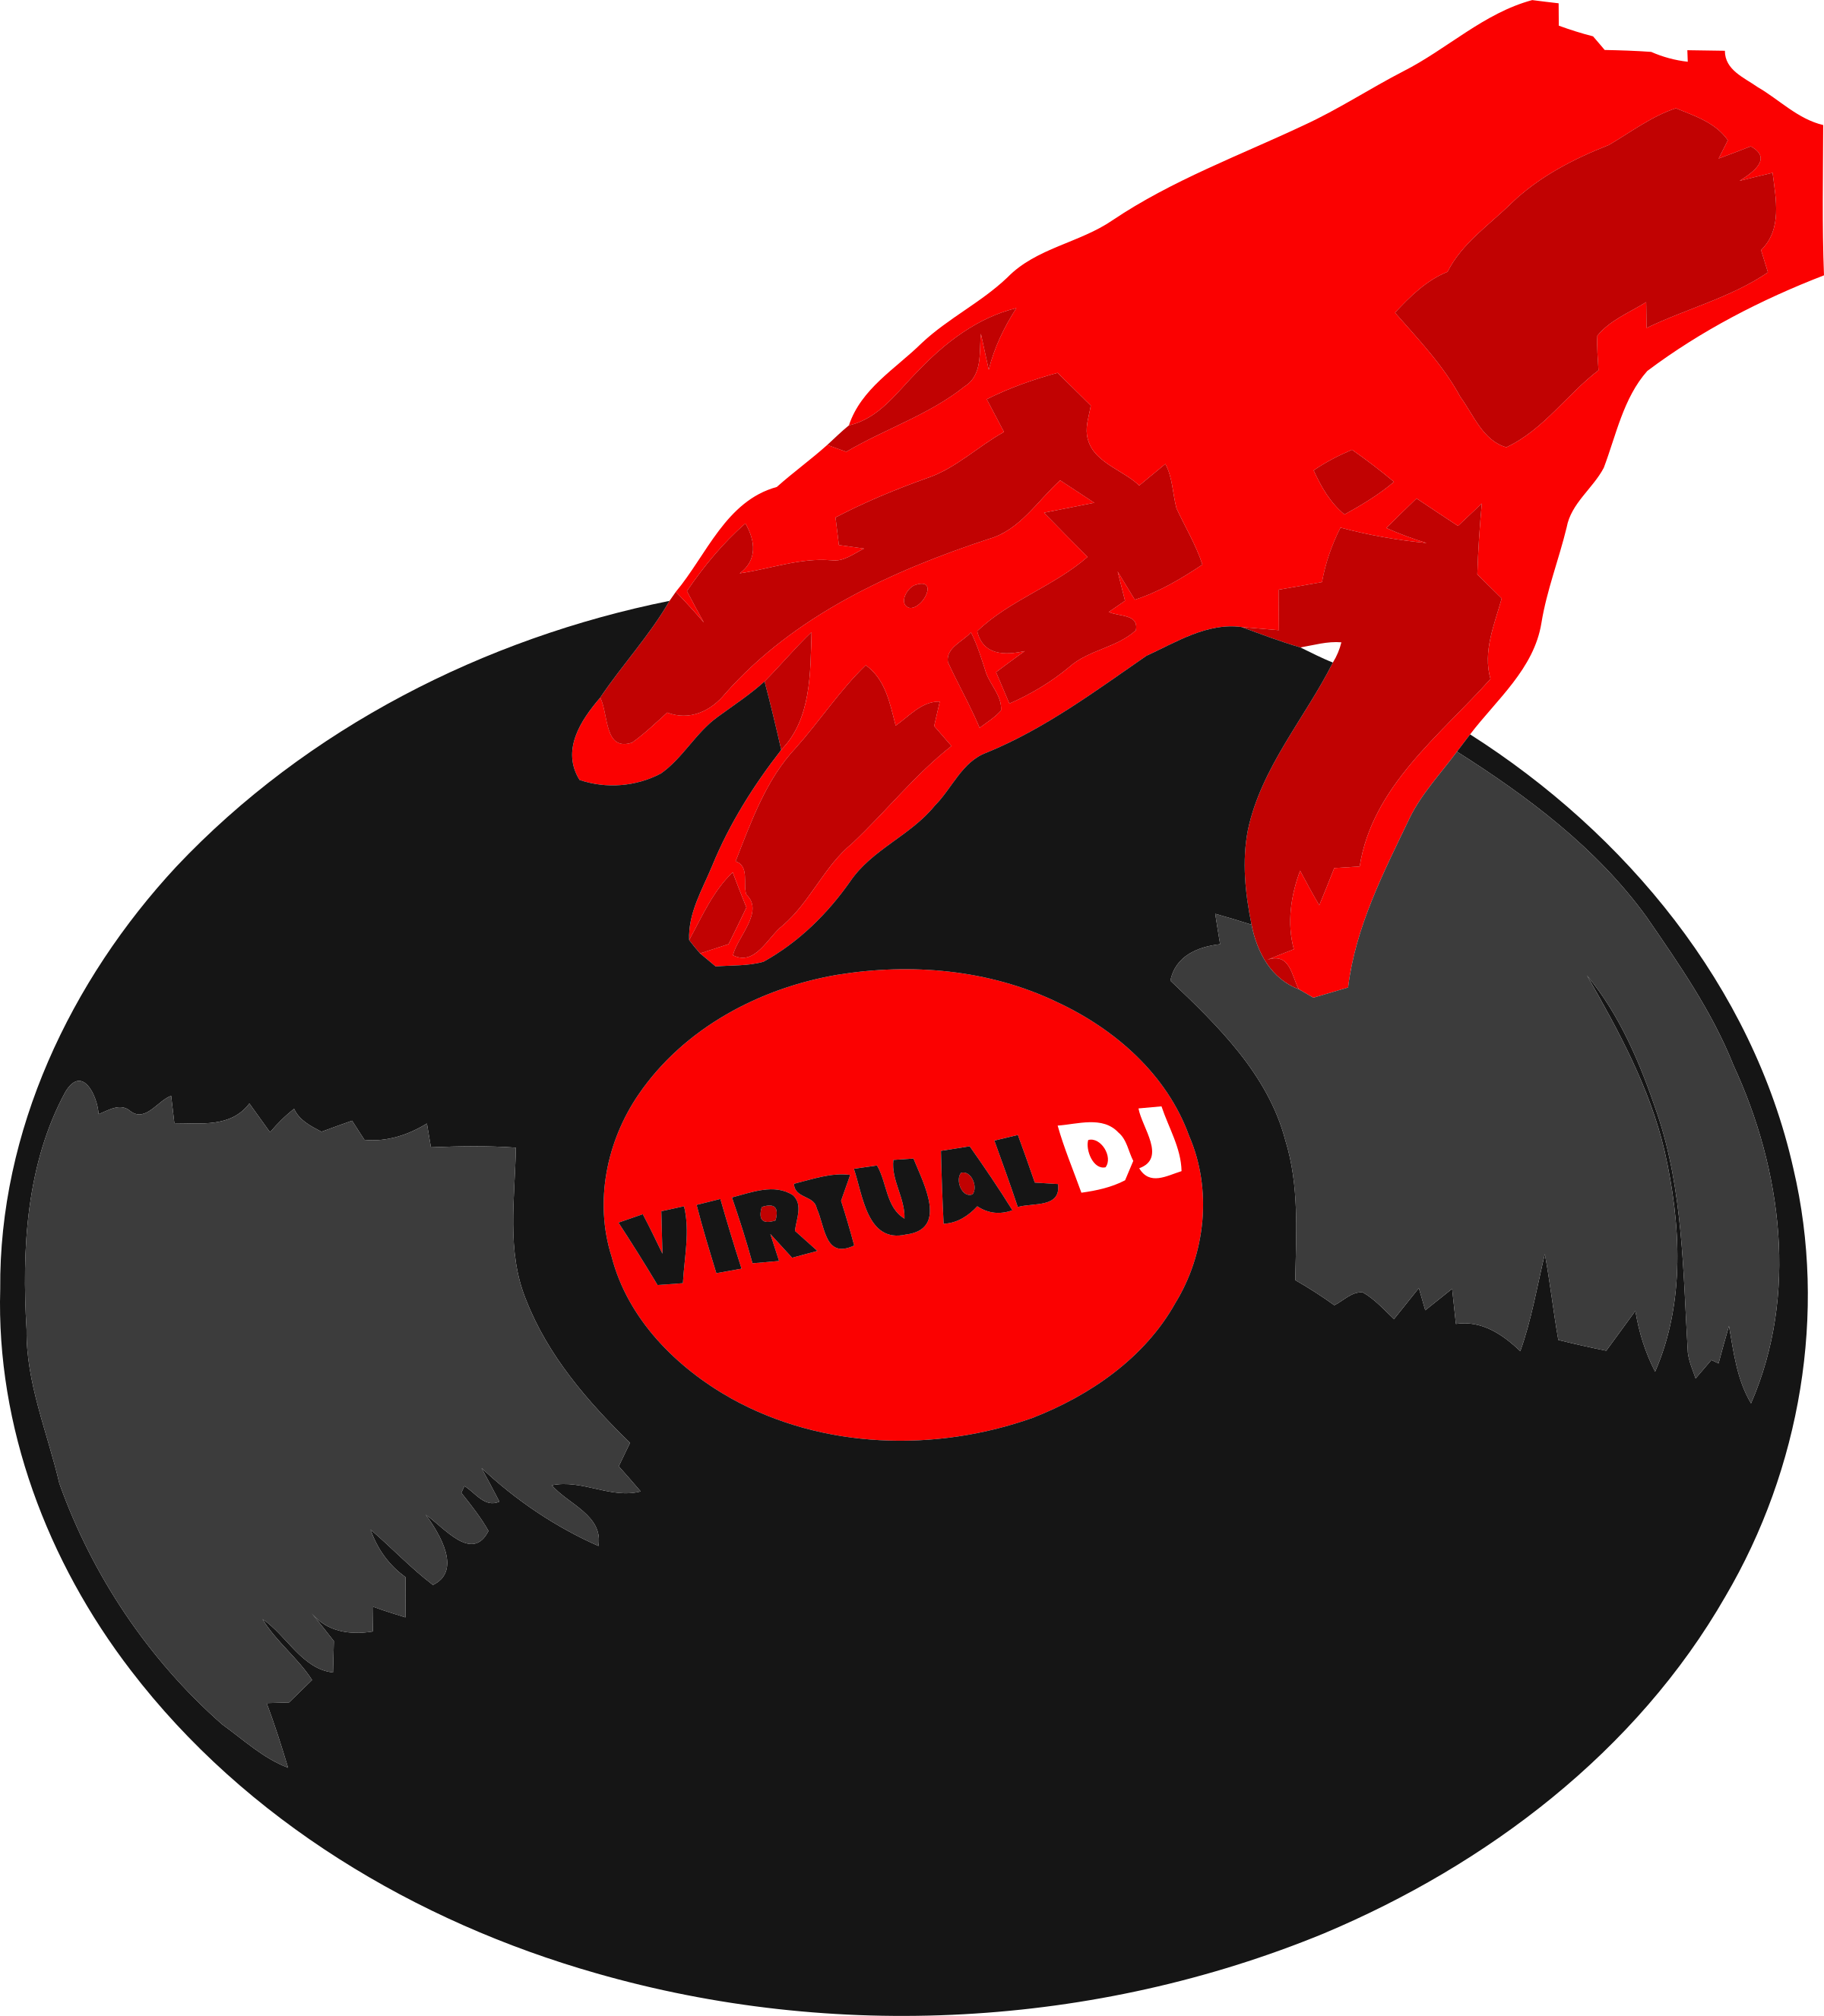 Virtual DJ Disc jockey Logo.